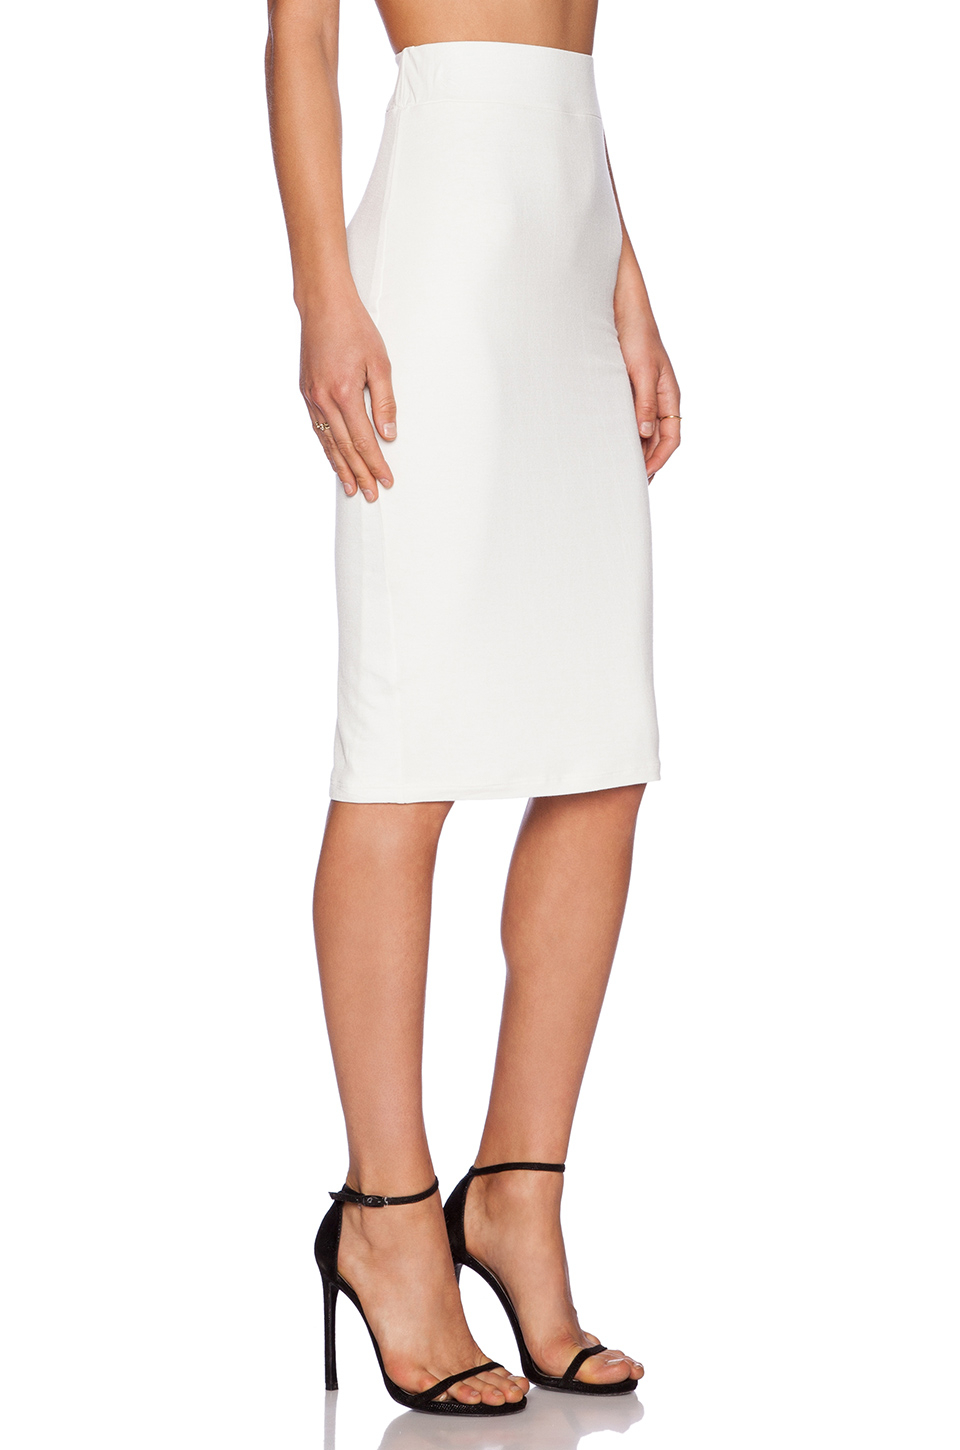 blq basiq high waisted skirt in white lyst